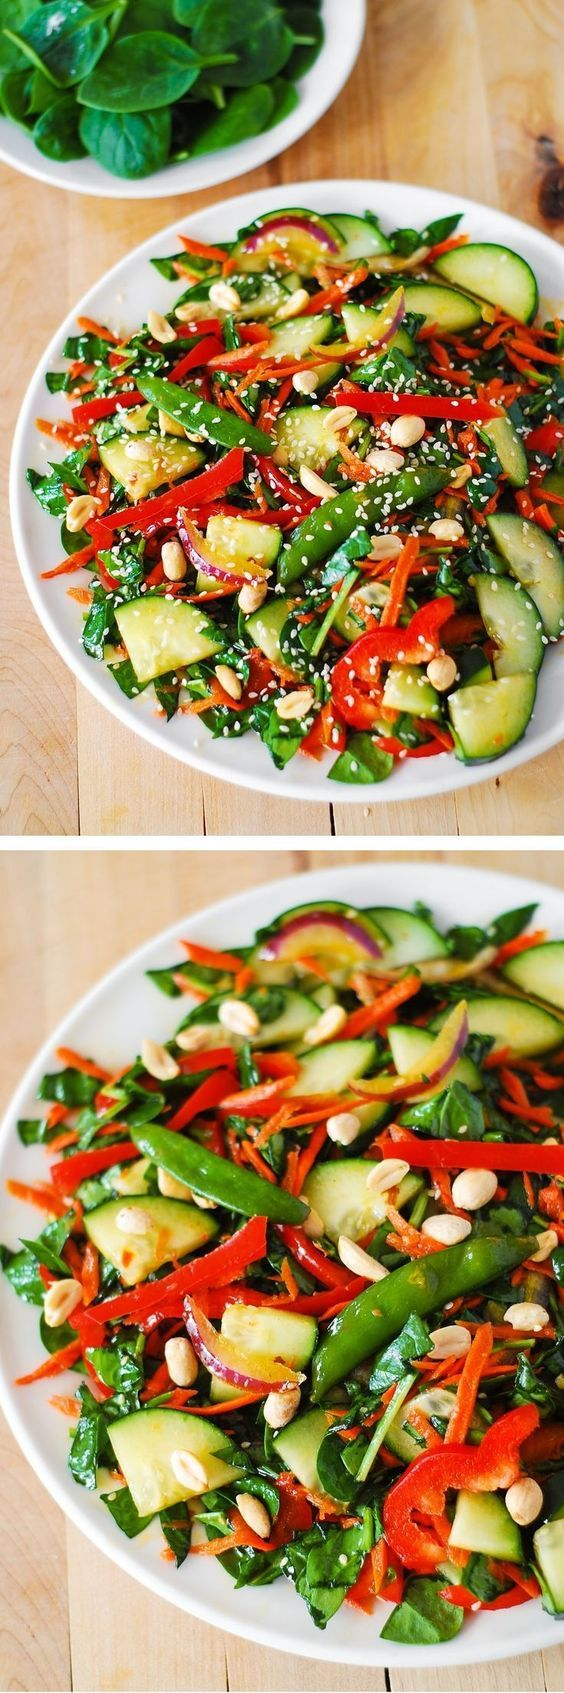 Healthy, vegetarian, and gluten free recipe: Crunchy Asian salad with peanut dressing. Vegetables tossed in a delicious, homemade peanut dressing, and topped with toasted peanuts and sesame seeds. The salad dressing is both sweet and sour, and very creamy!